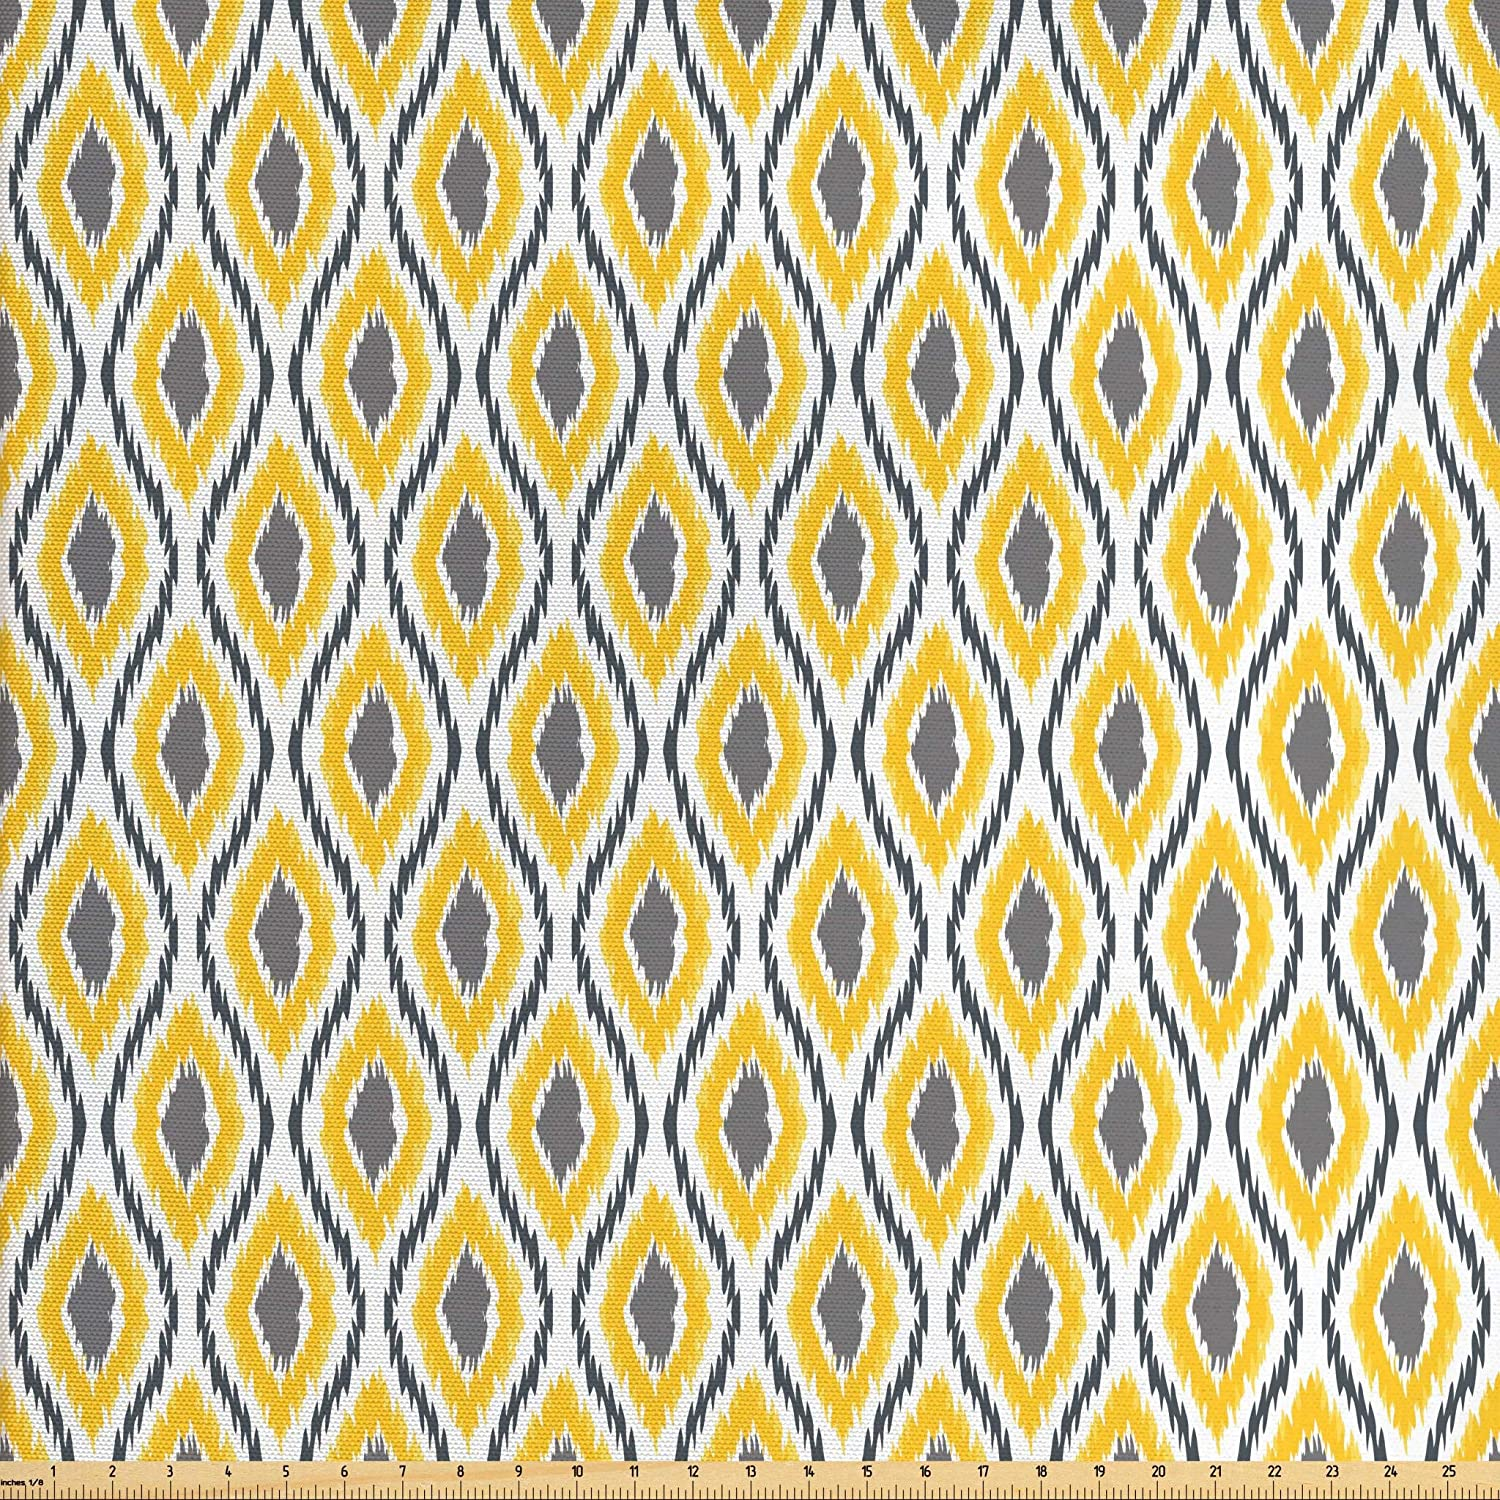 Lunarable Ikat Fabric by The Yard, Oval Double Zigzag Ikat Motifs Exotic Japanese Culture Design, Decorative Fabric for Upholstery and Home Accents, 1 Yard, Yellow White